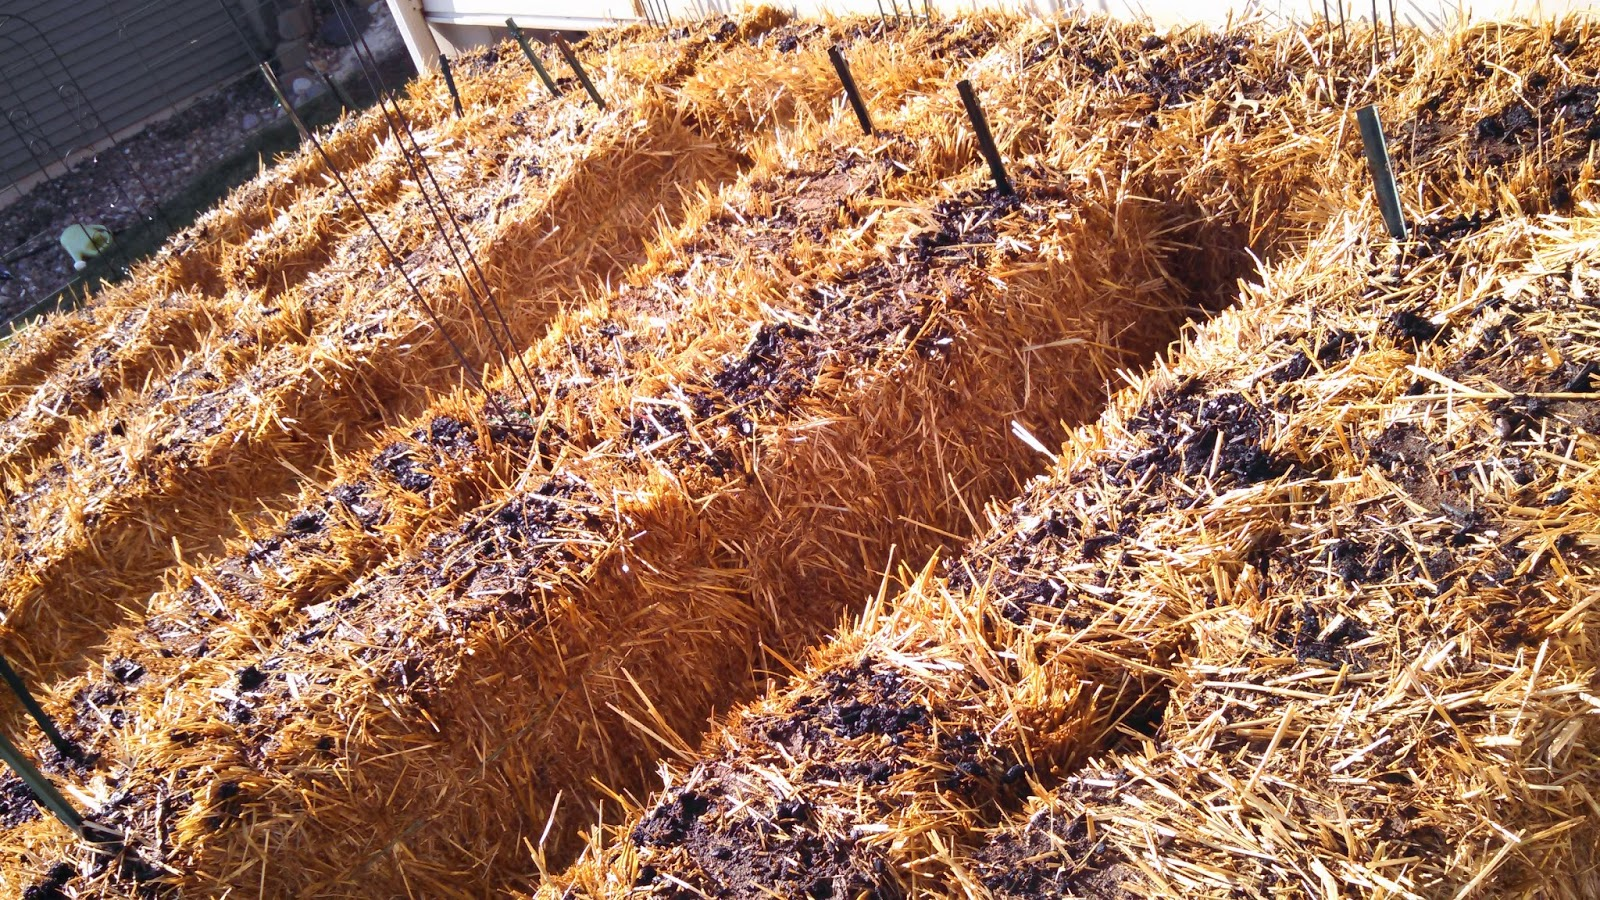 Straw Bales, Day 4, After Watering